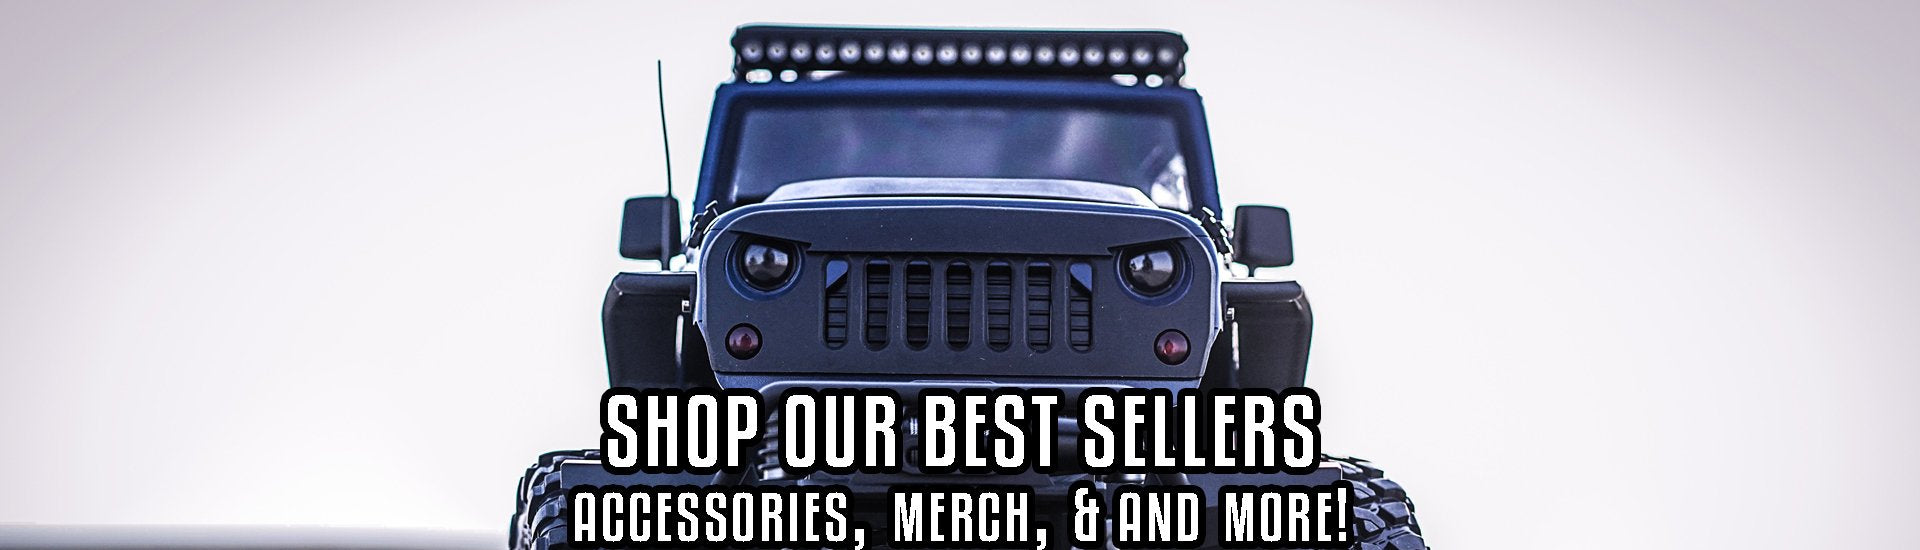 Shop Our Best Sellers!